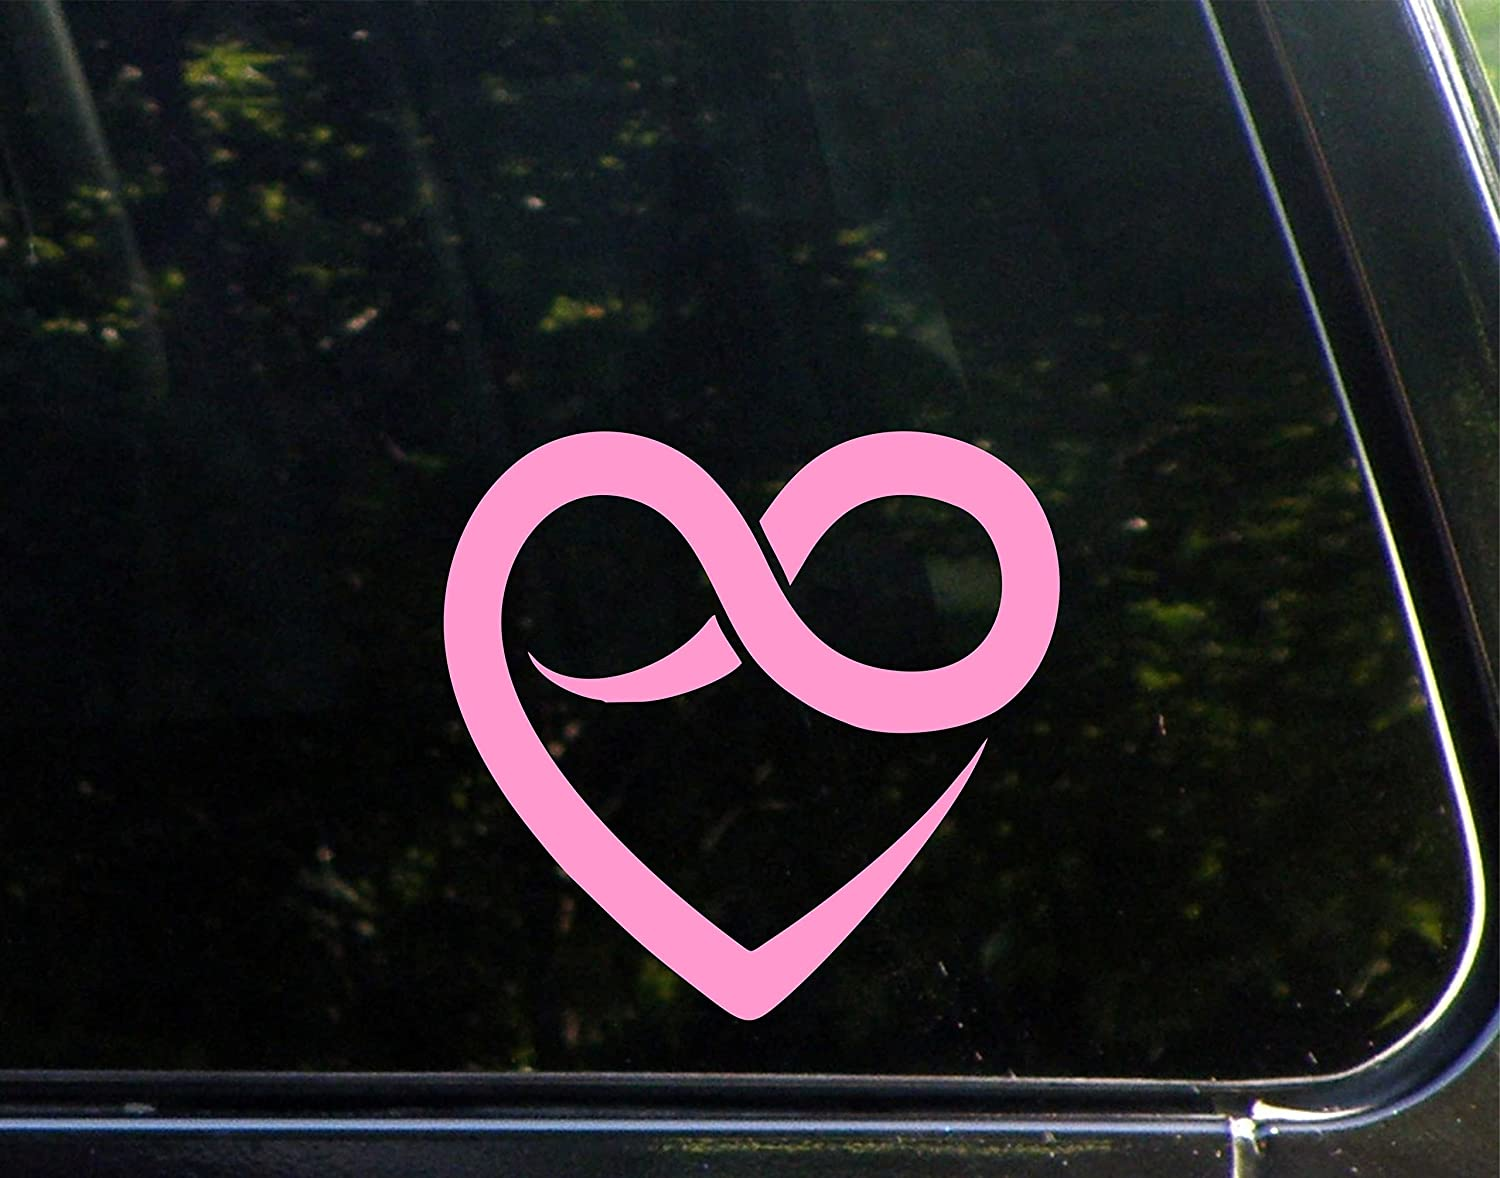 Amazon heart with infinity symbol 6 x 5 12 pink vinyl amazon heart with infinity symbol 6 x 5 12 pink vinyl die cut decal bumper sticker for windows cars trucks laptops etc automotive buycottarizona Image collections